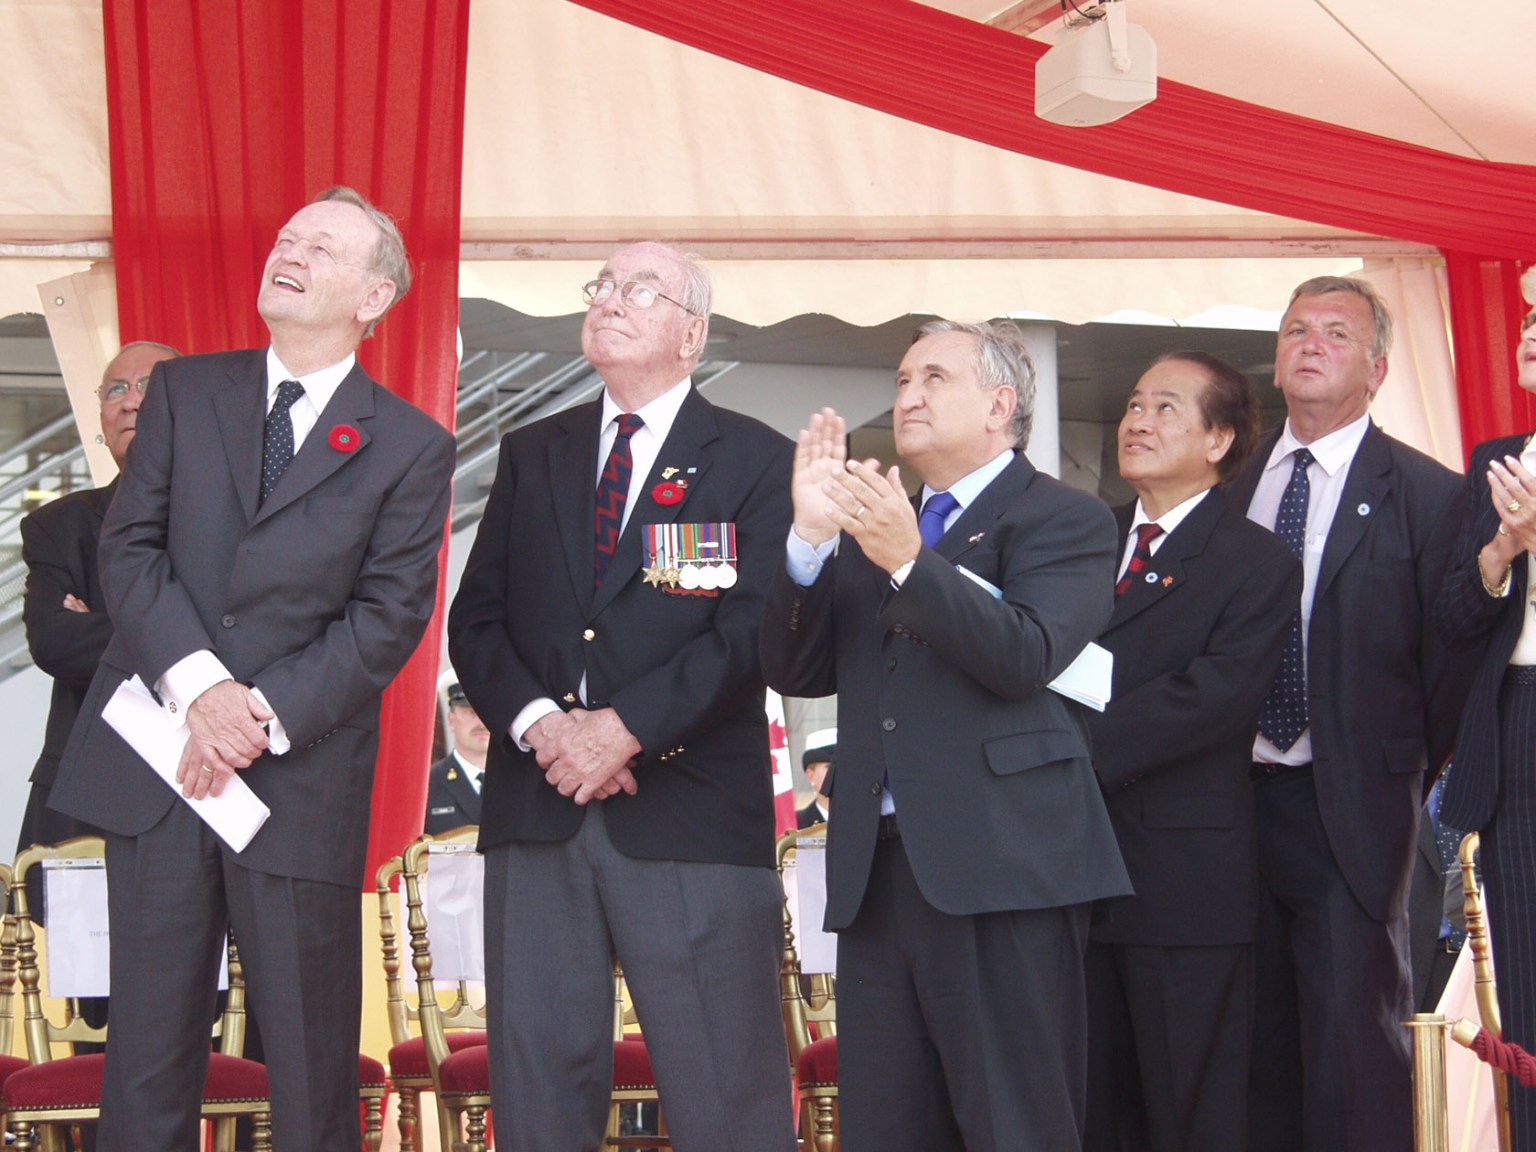 Colour photo. A group of men in suits look upwards.